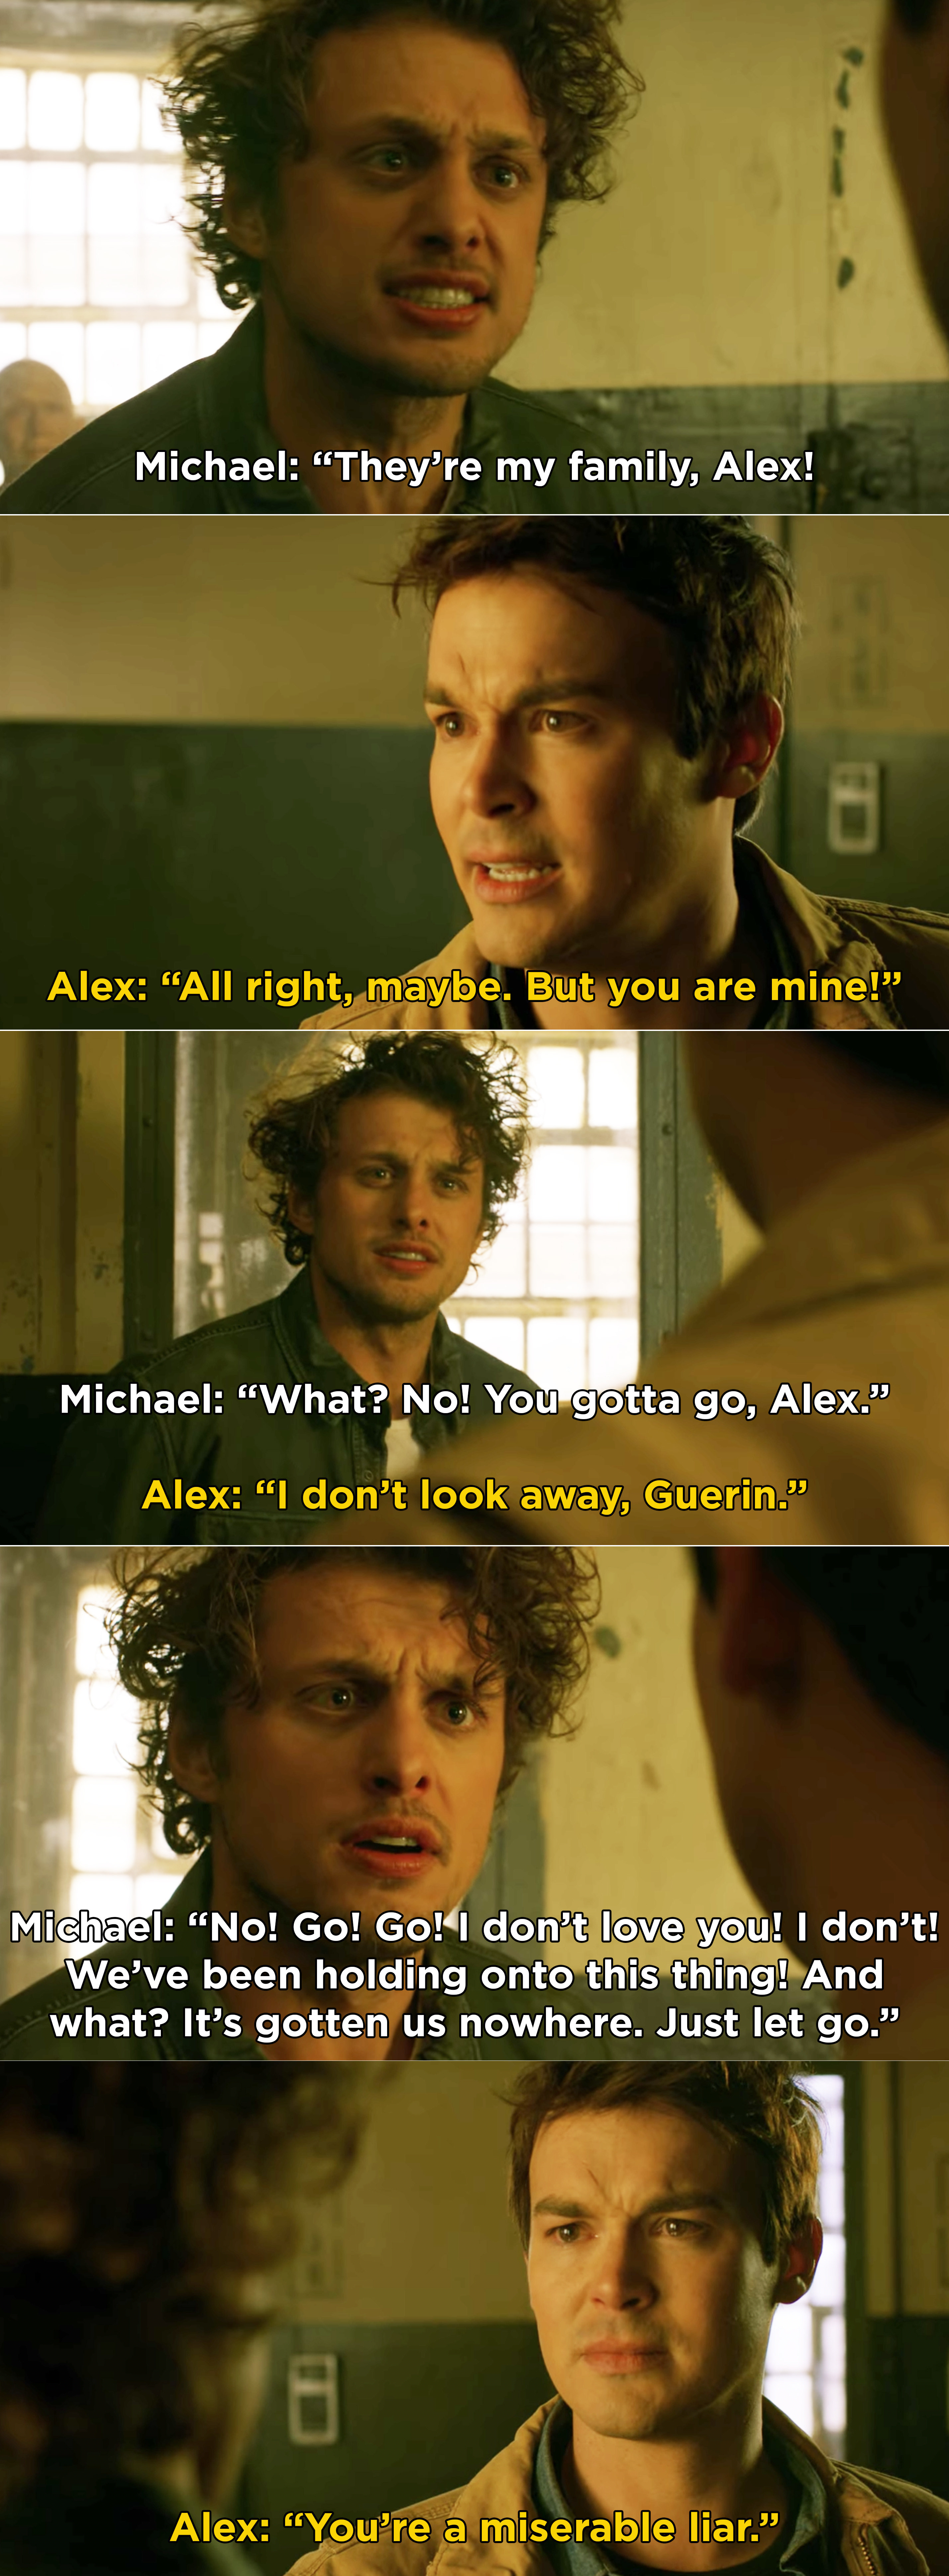 Michael telling Alex he doesn't love him anymore, and Alex knowing he's lying